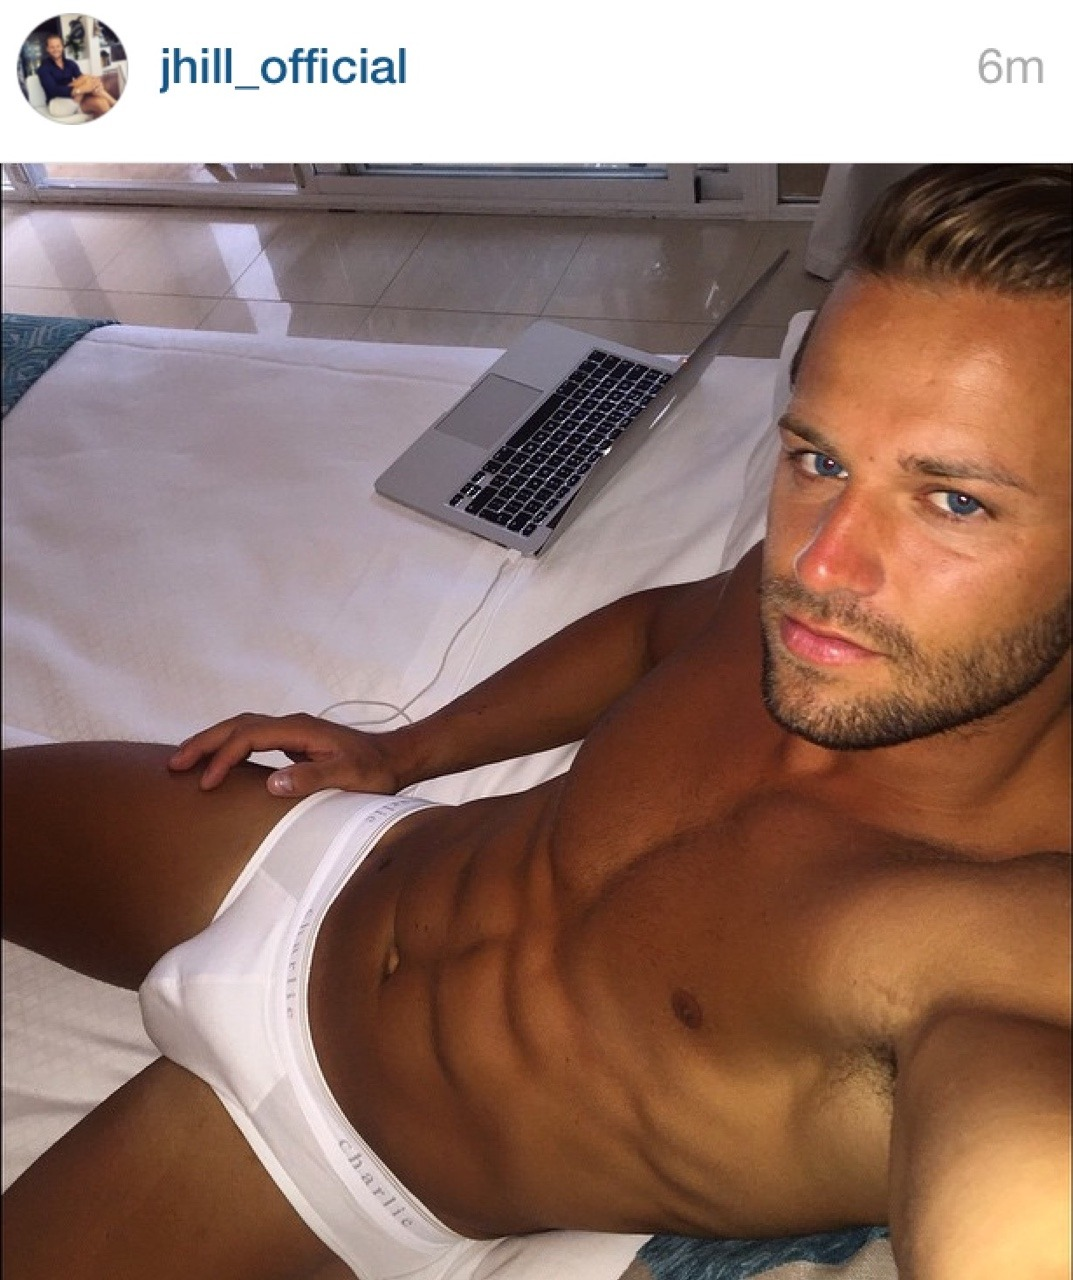 ... from The Apprentice UK, looking fly. Now just post some naked selfies